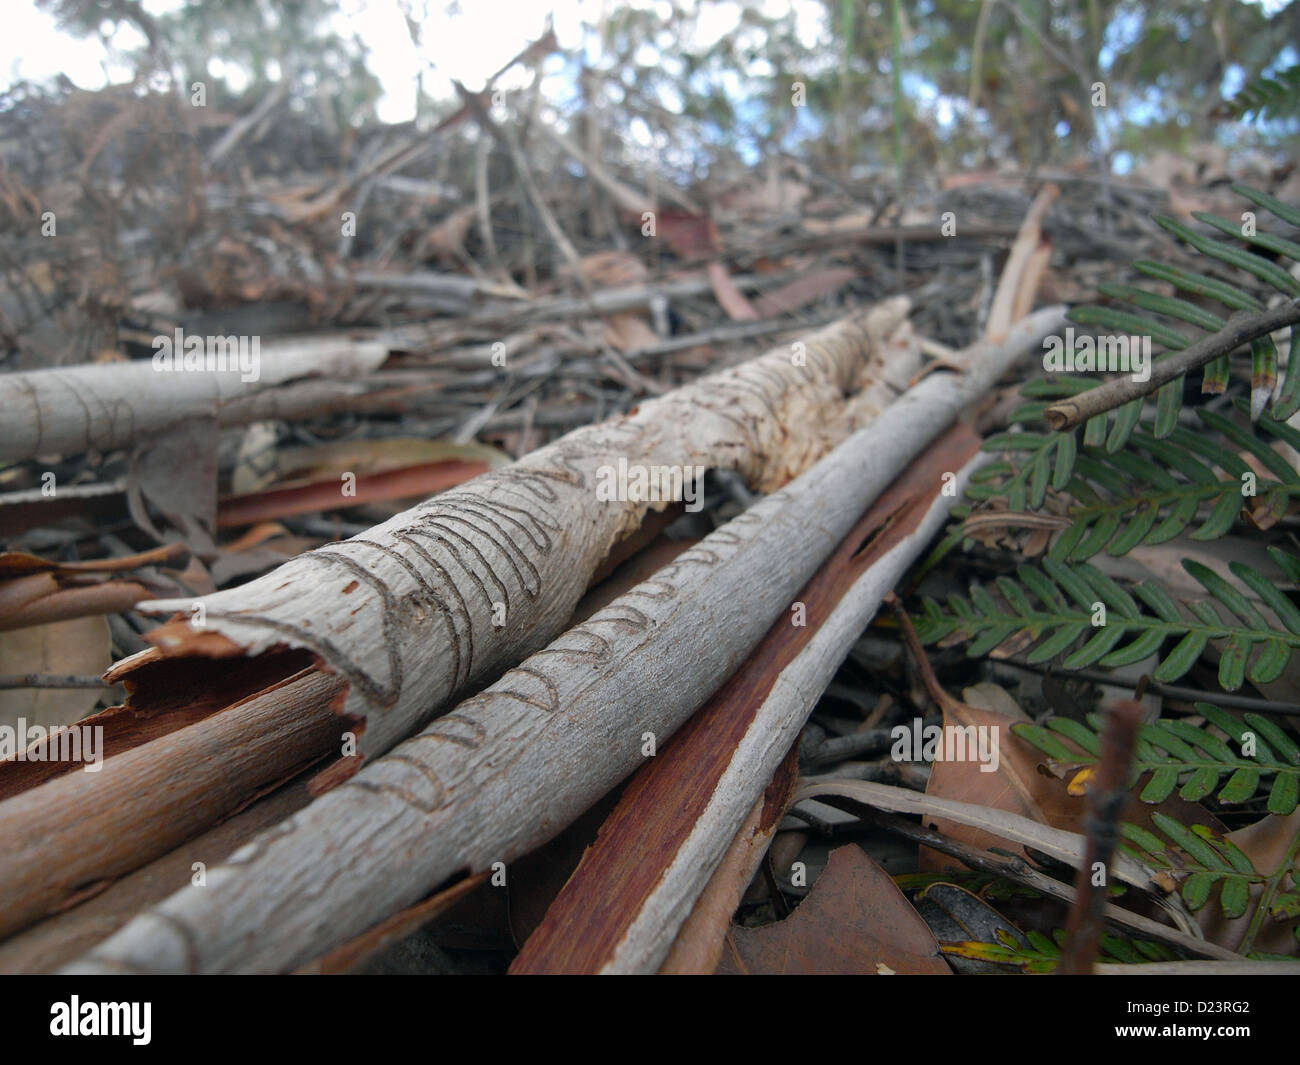 Mixed leaf litter including scribblygum bark (Eucalyptus racemosa) and bracken on floor of  forest - bushfire fuel - Stock Image